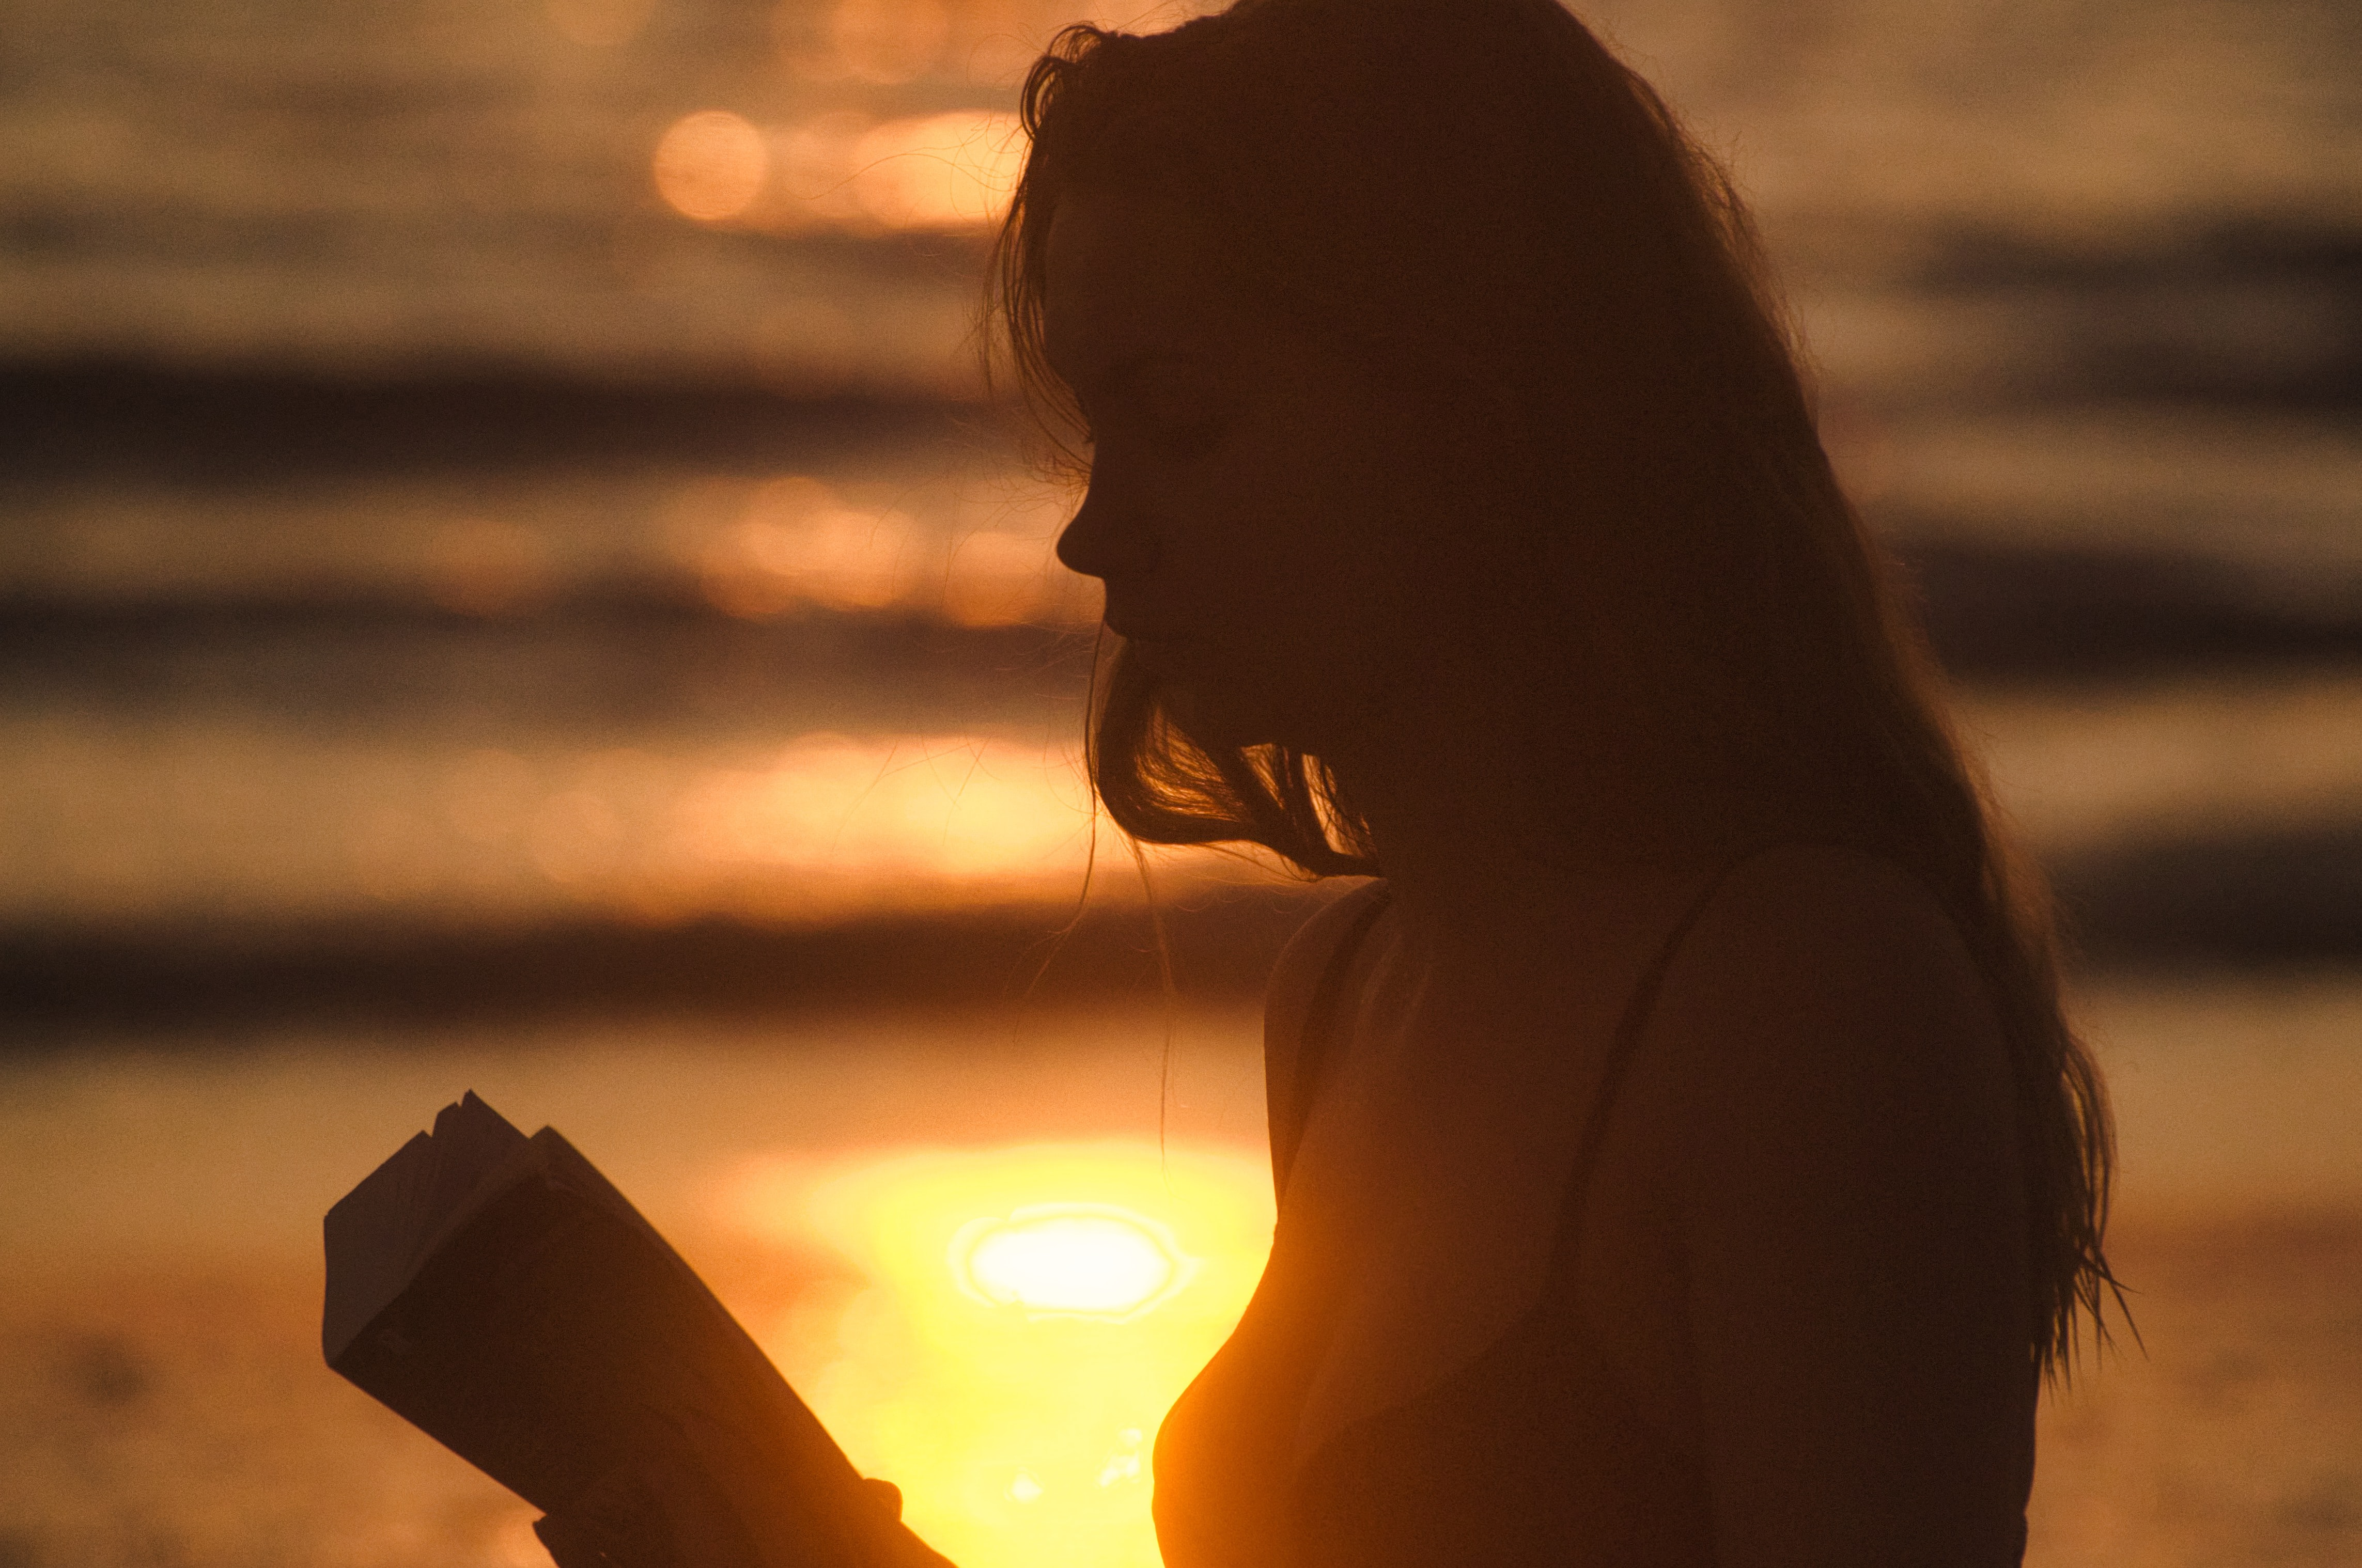 woman reading near body of water during golden hour